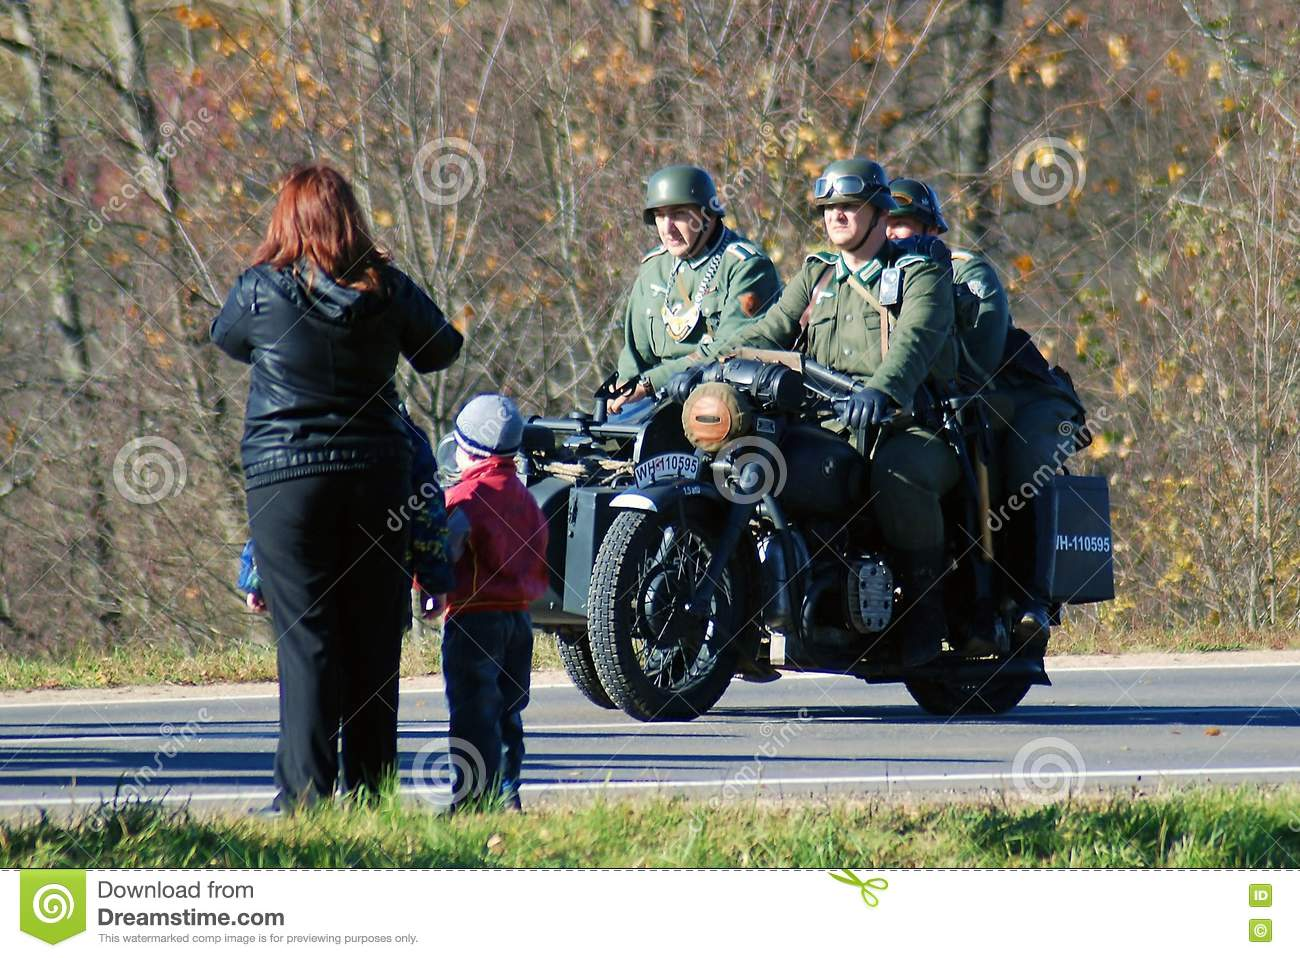 A woman and children look at three military men in retro uniform